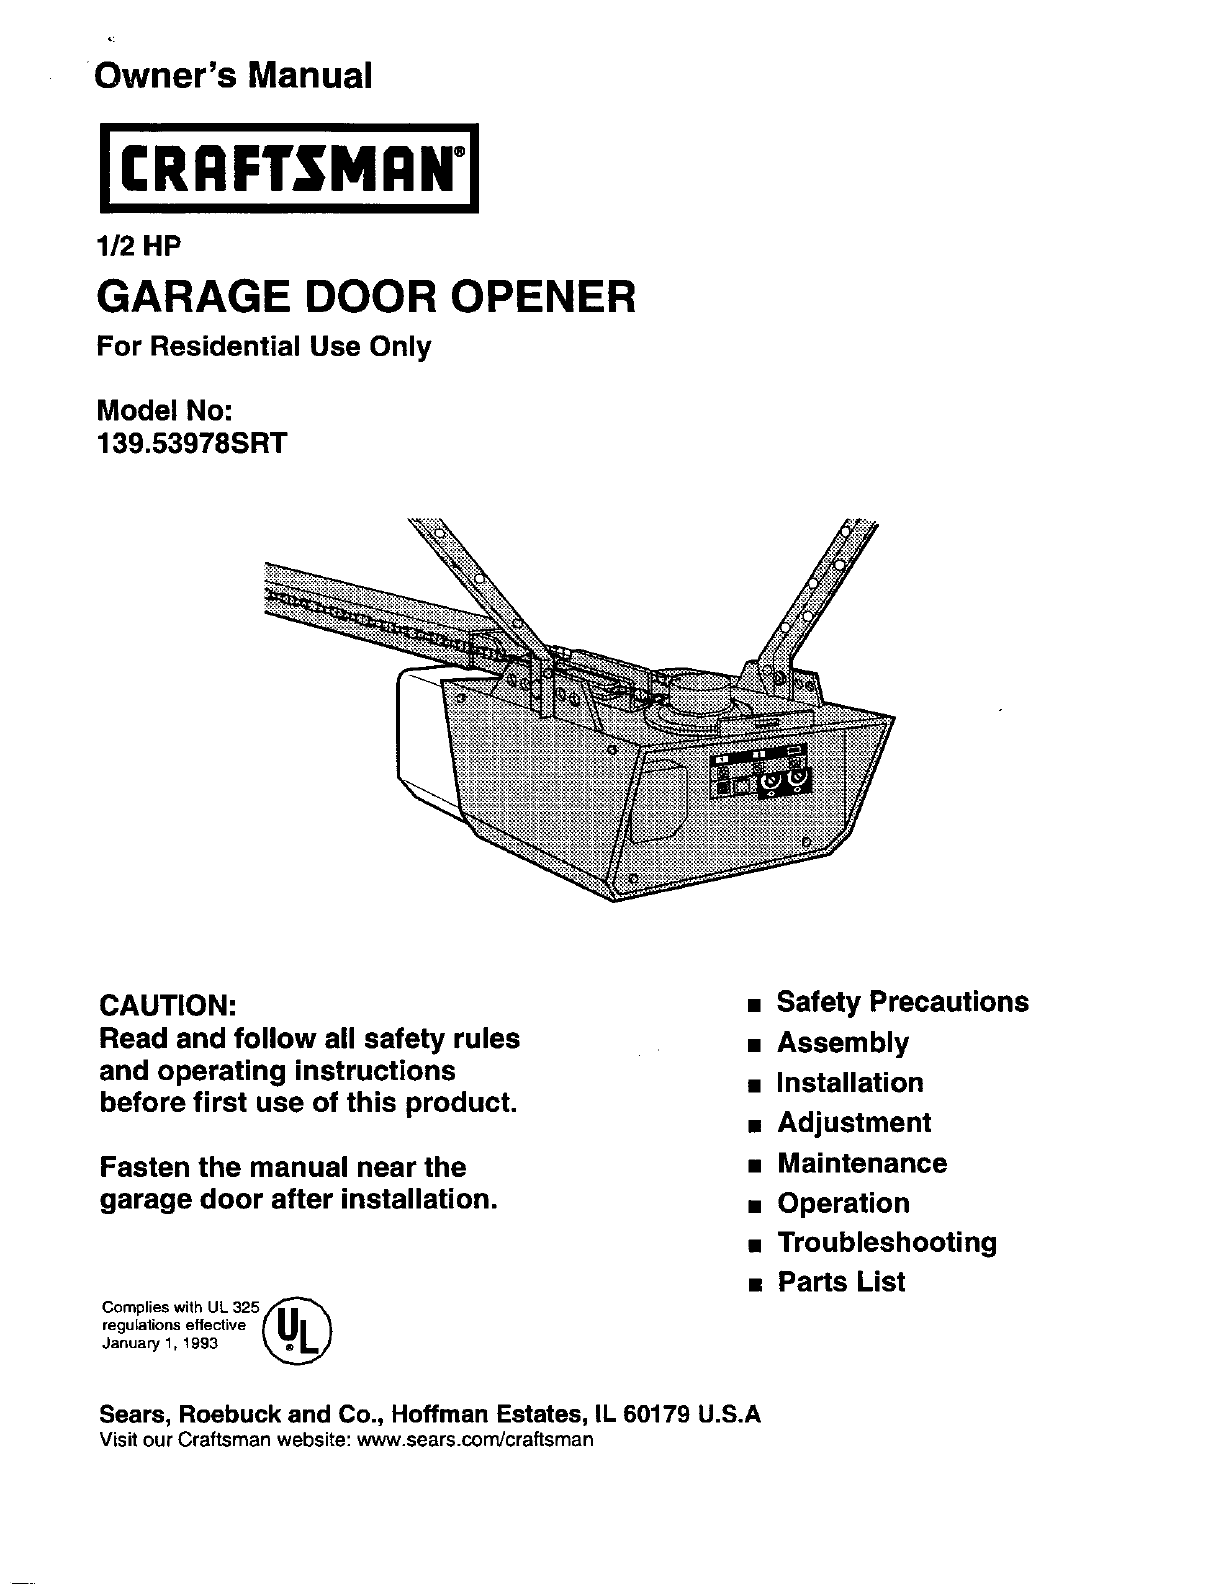 0f05b938 d0cb 4872 aeee 96ef63eab4f3 bg1 craftsman garage door opener 139 53978srt user guide craftsman garage door wiring diagram at edmiracle.co